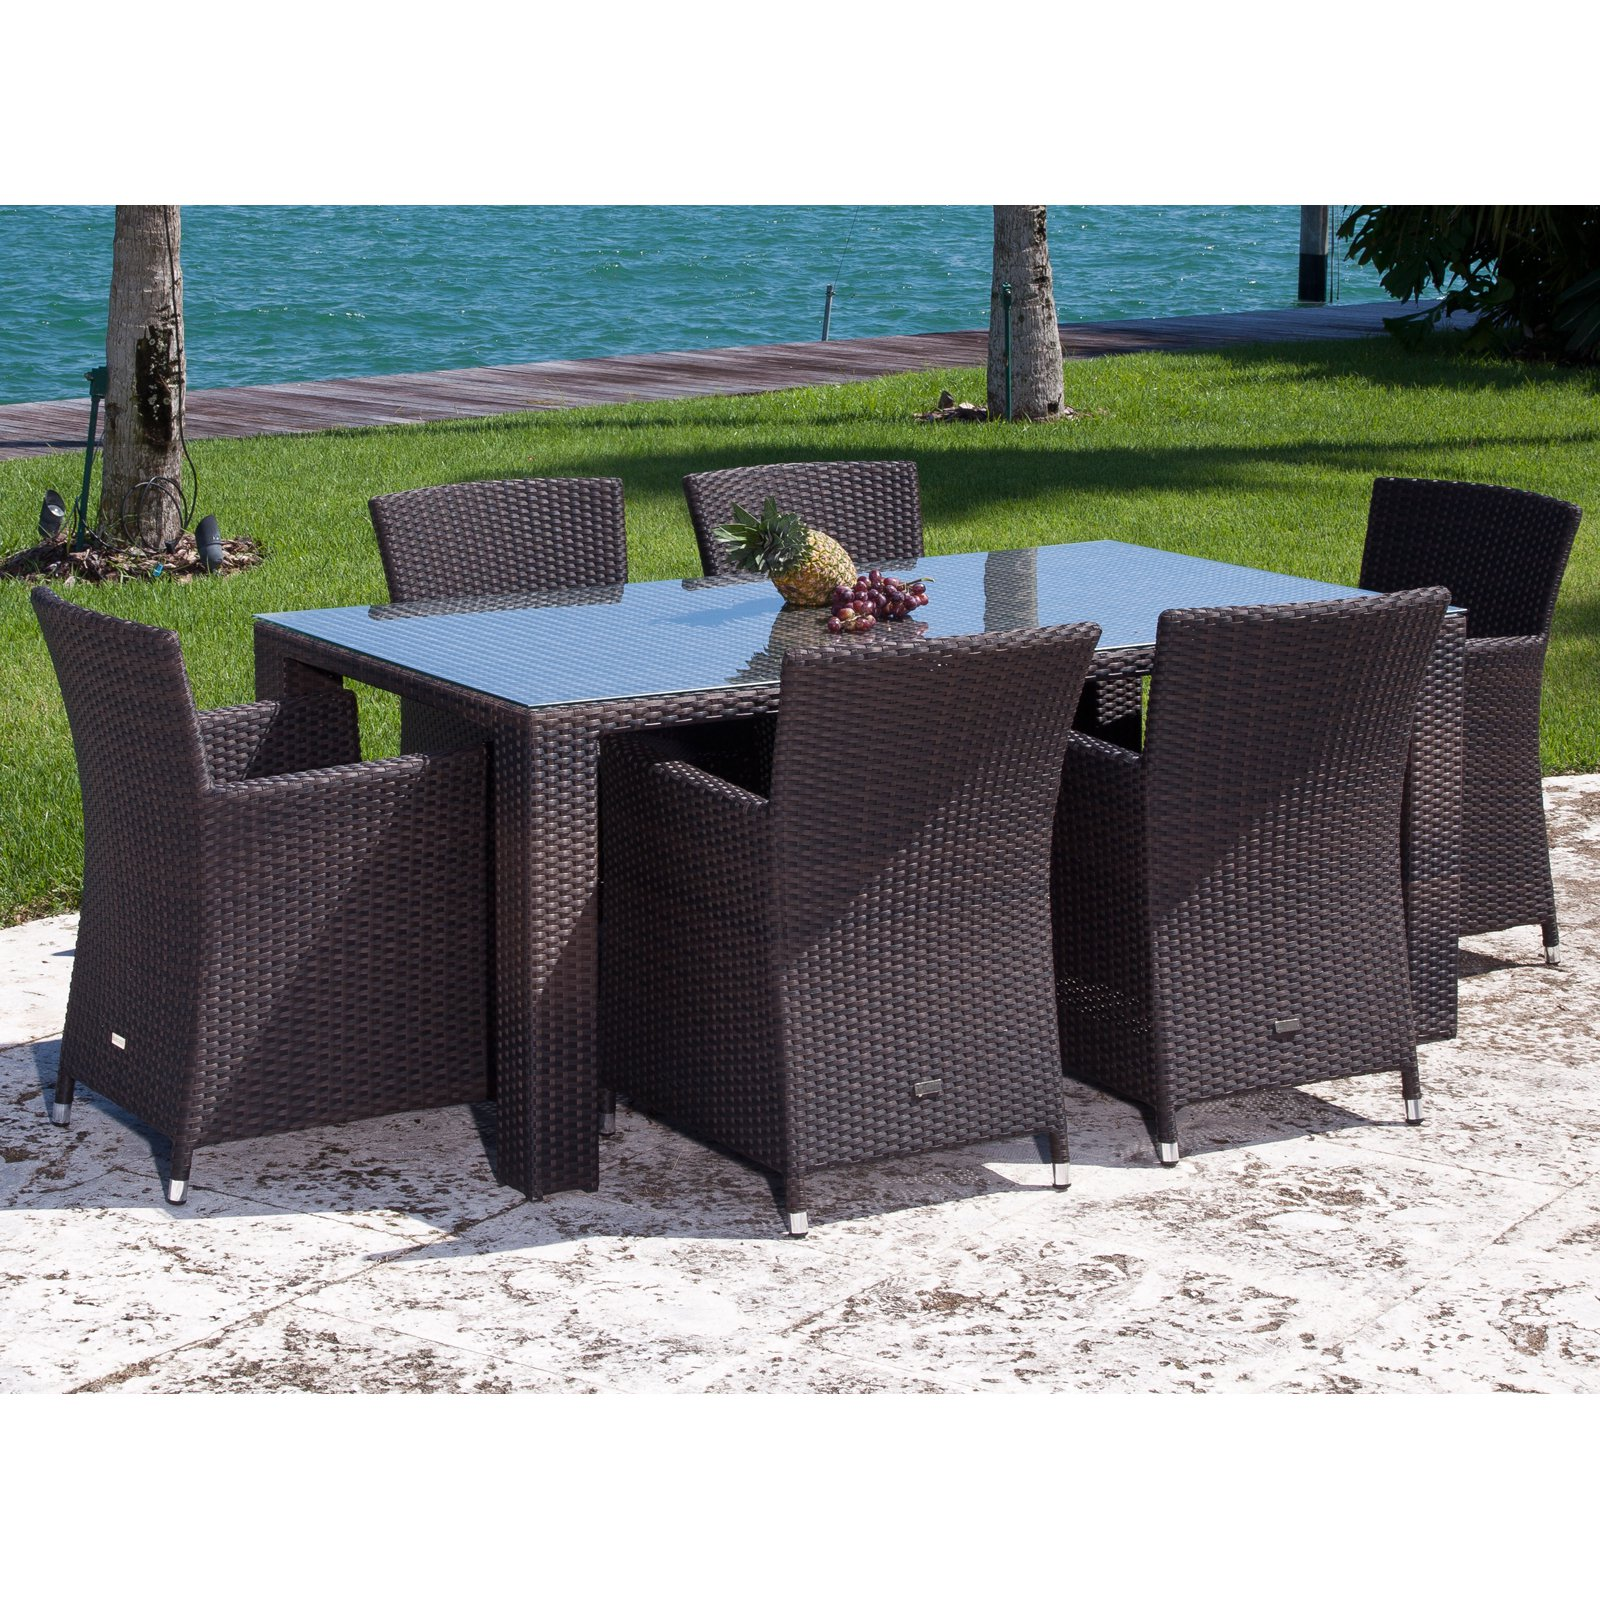 Source Outdoor St. Tropez All-Weather Wicker Patio Dining Set - Seats 6